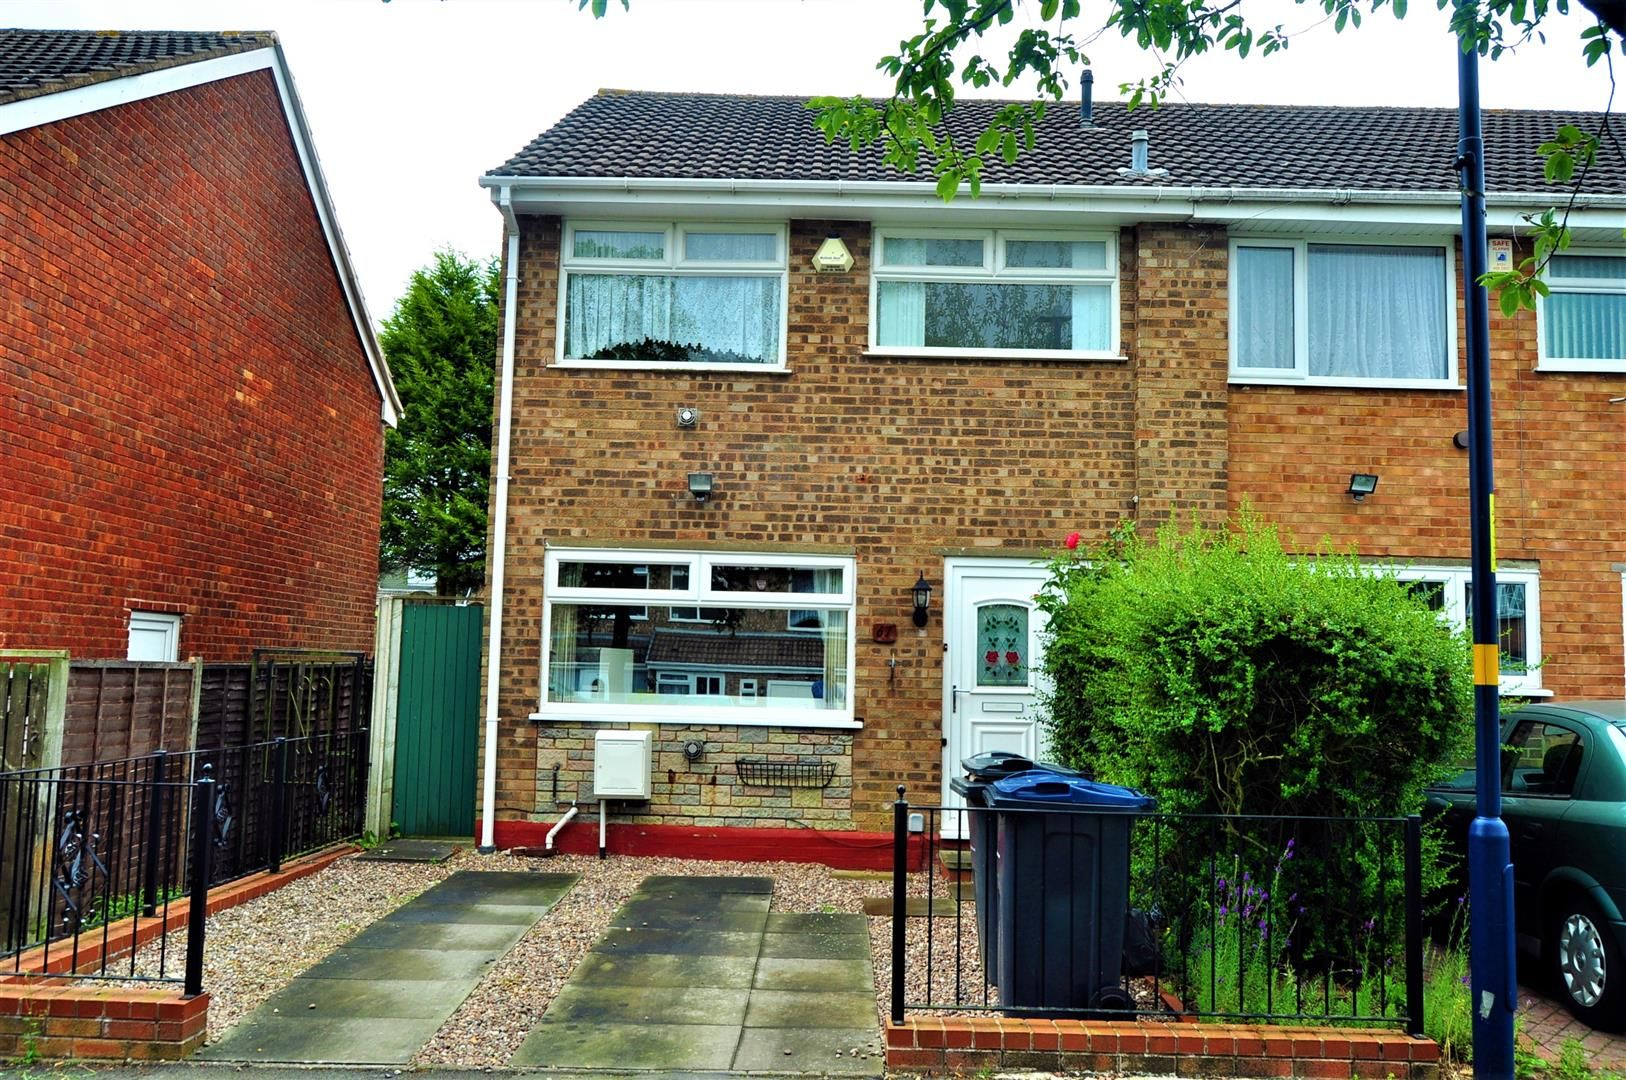 3 bed end-of-terrace for sale in Quinton - Property Image 1